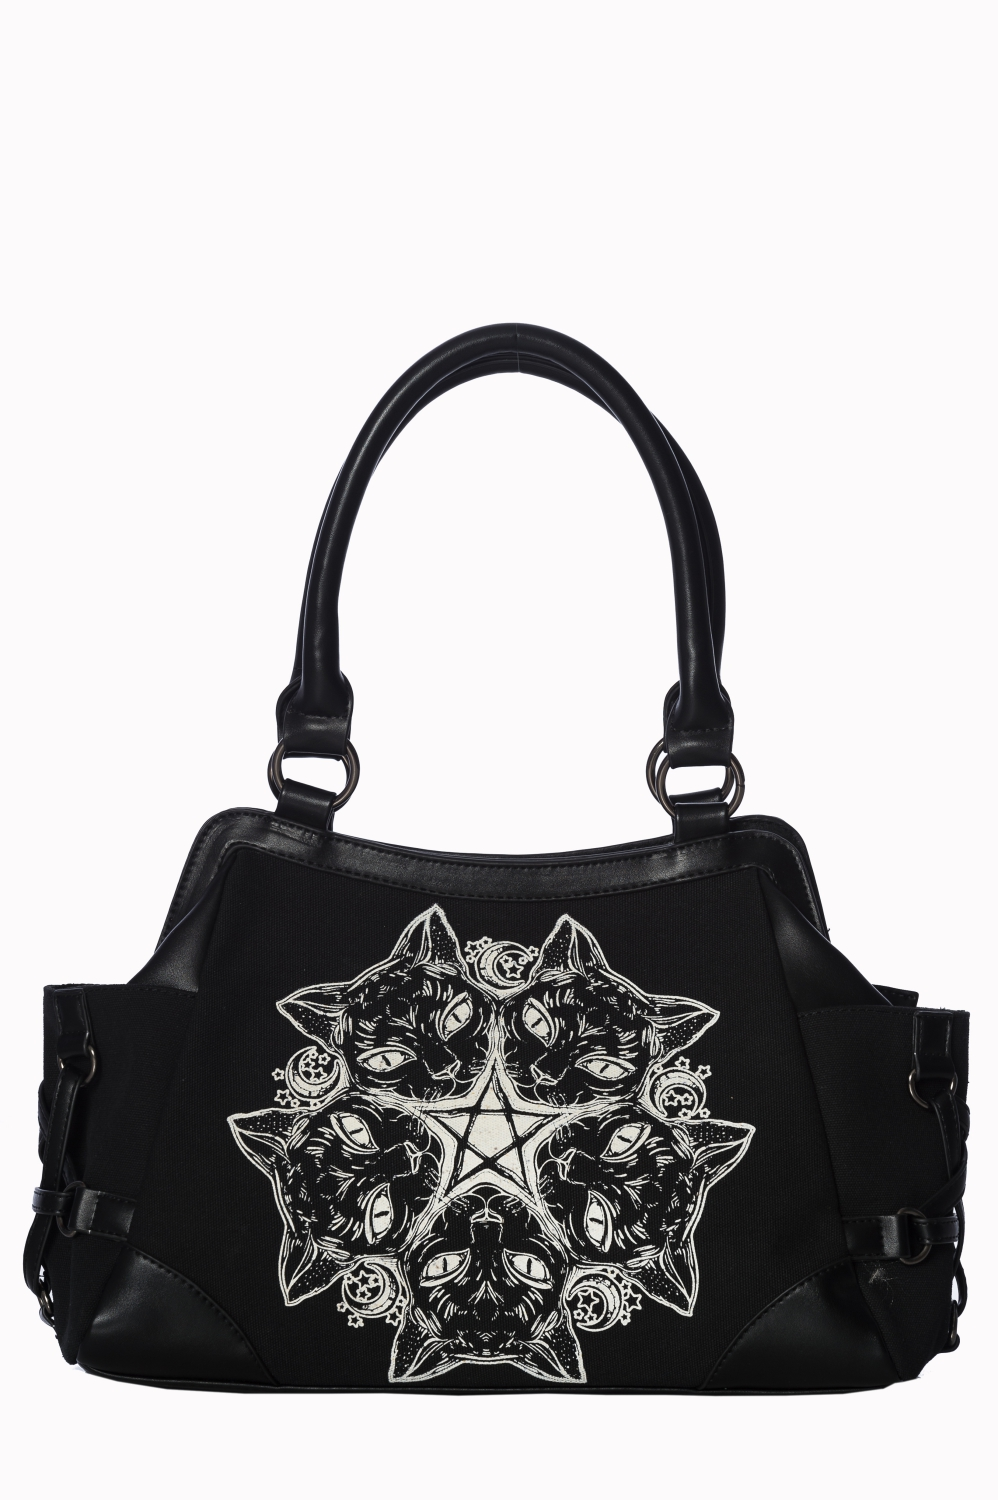 Black Cats Pentagram Purse 7245 Edmonton